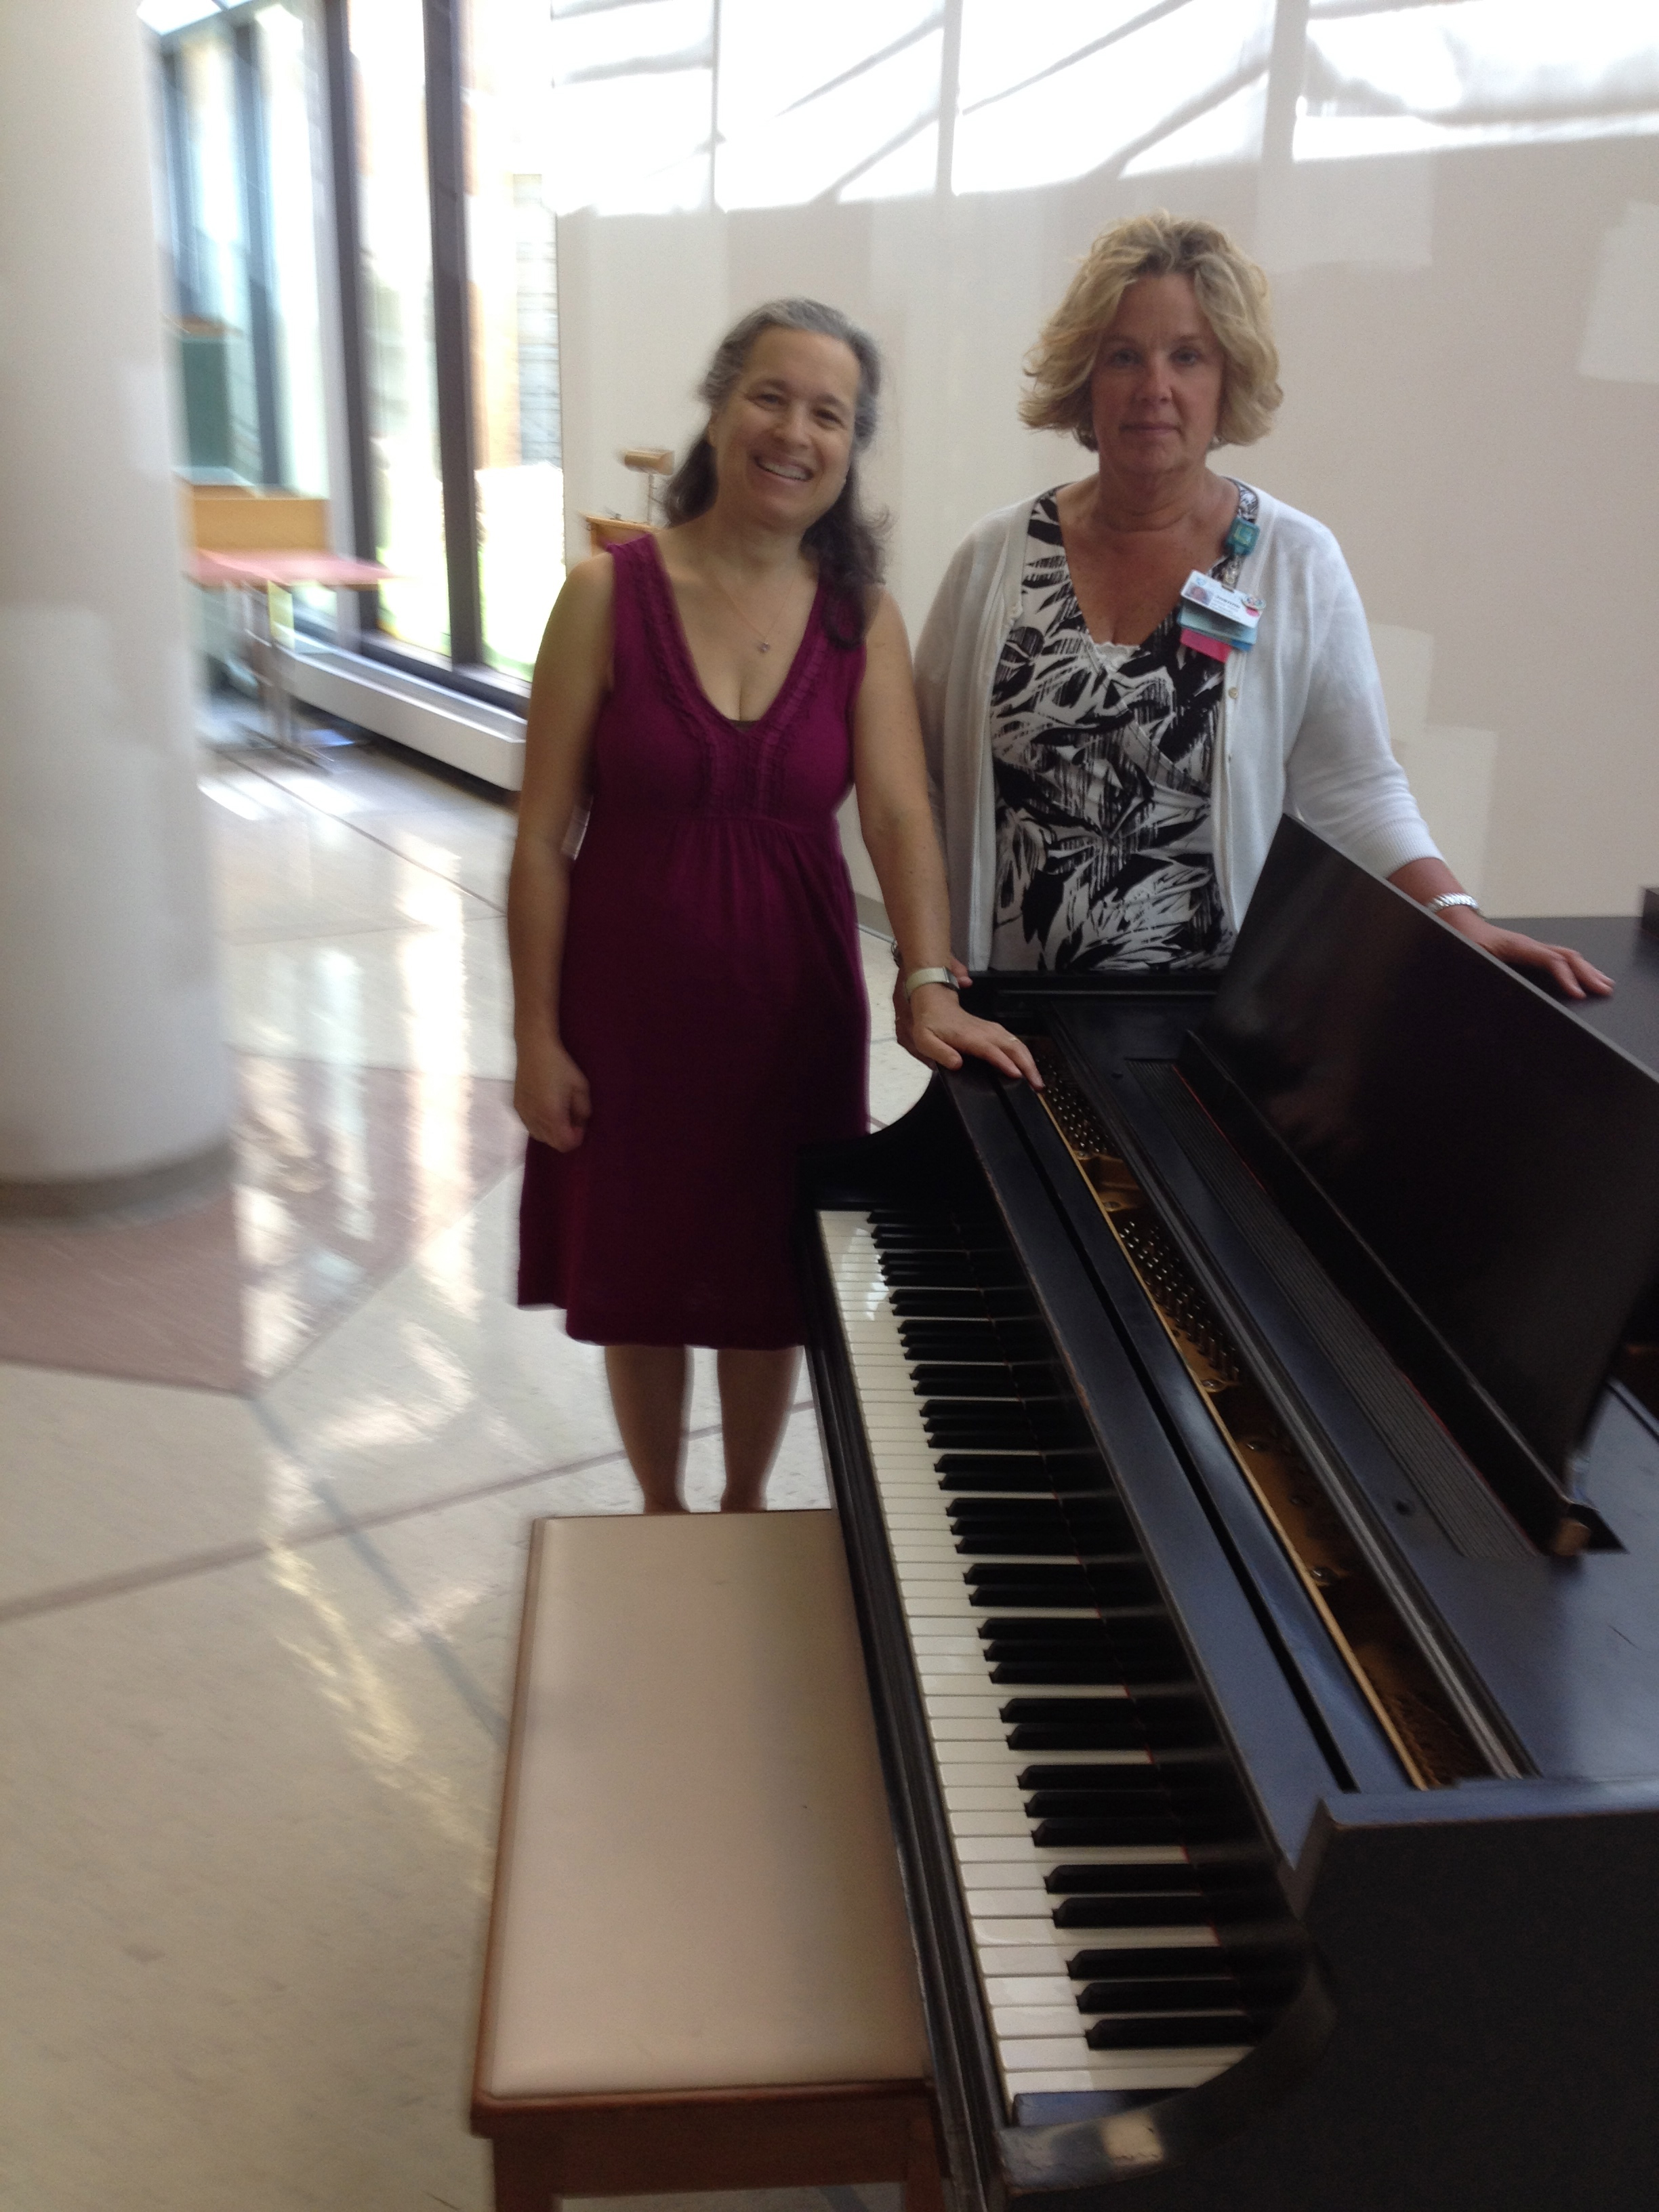 piano arrival at Spaulding Hospital Cambridge